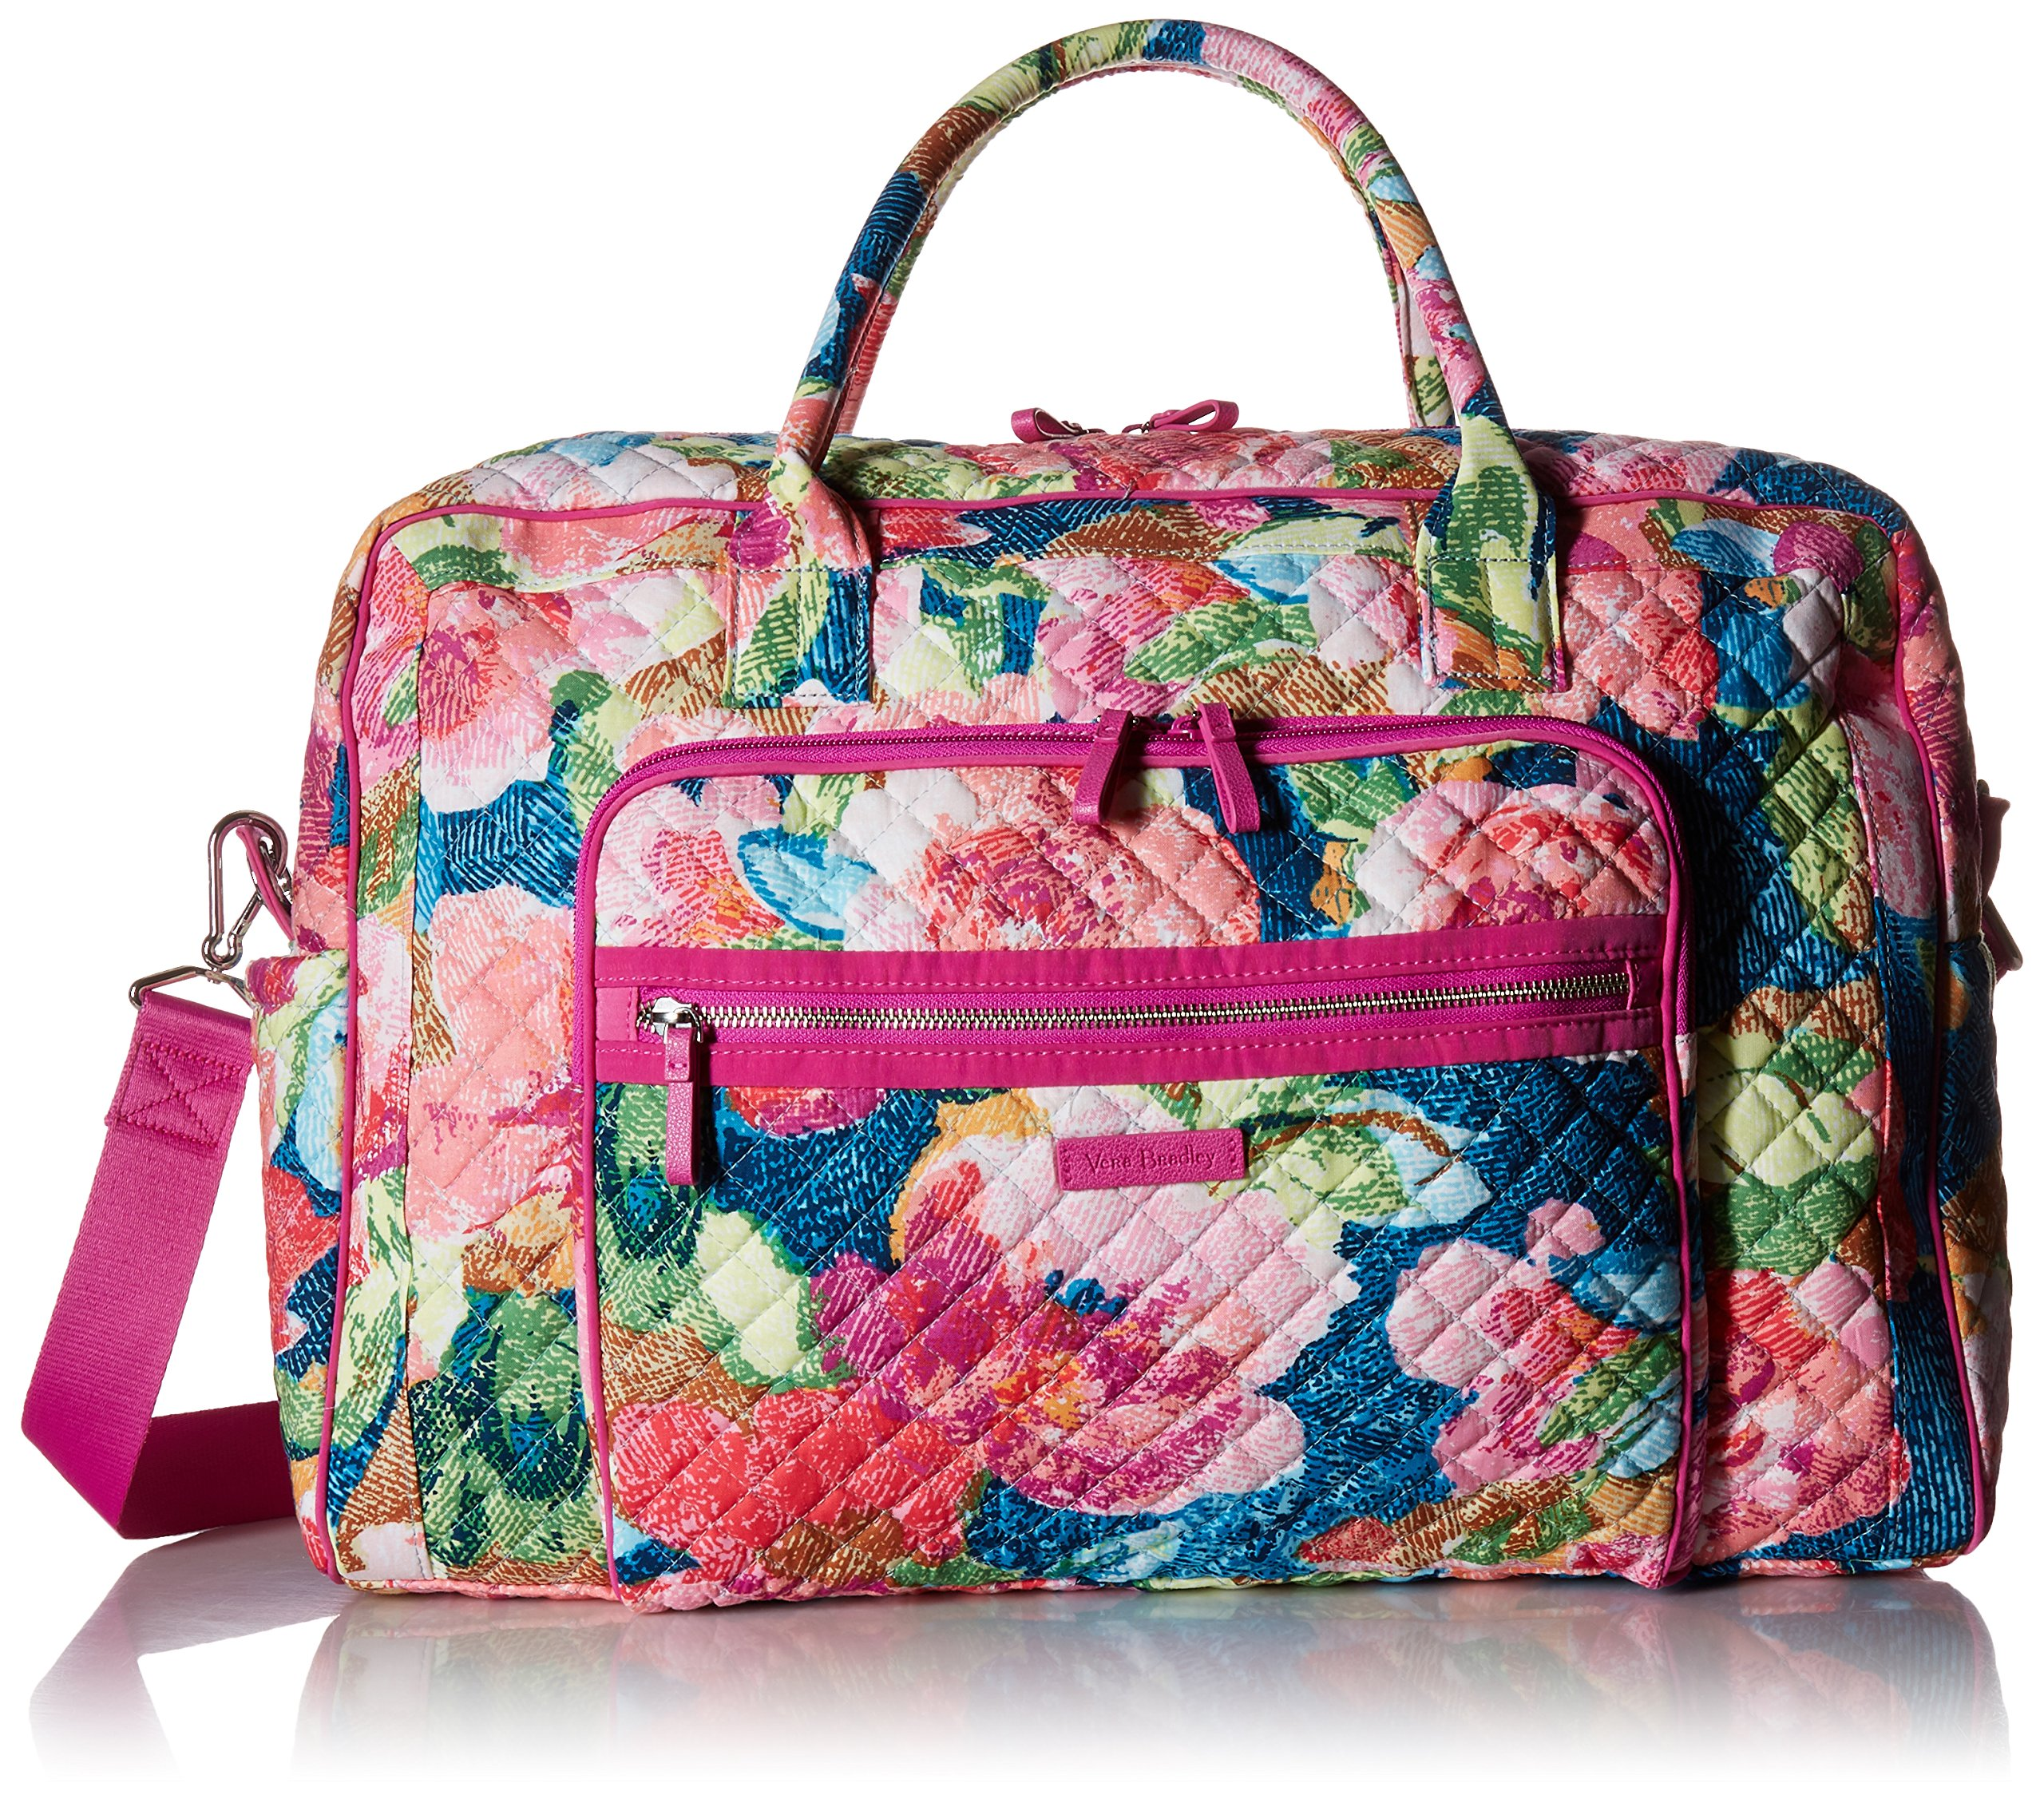 Vera Bradley Iconic Weekender Travel Bag, Signature Cotton, Superbloom